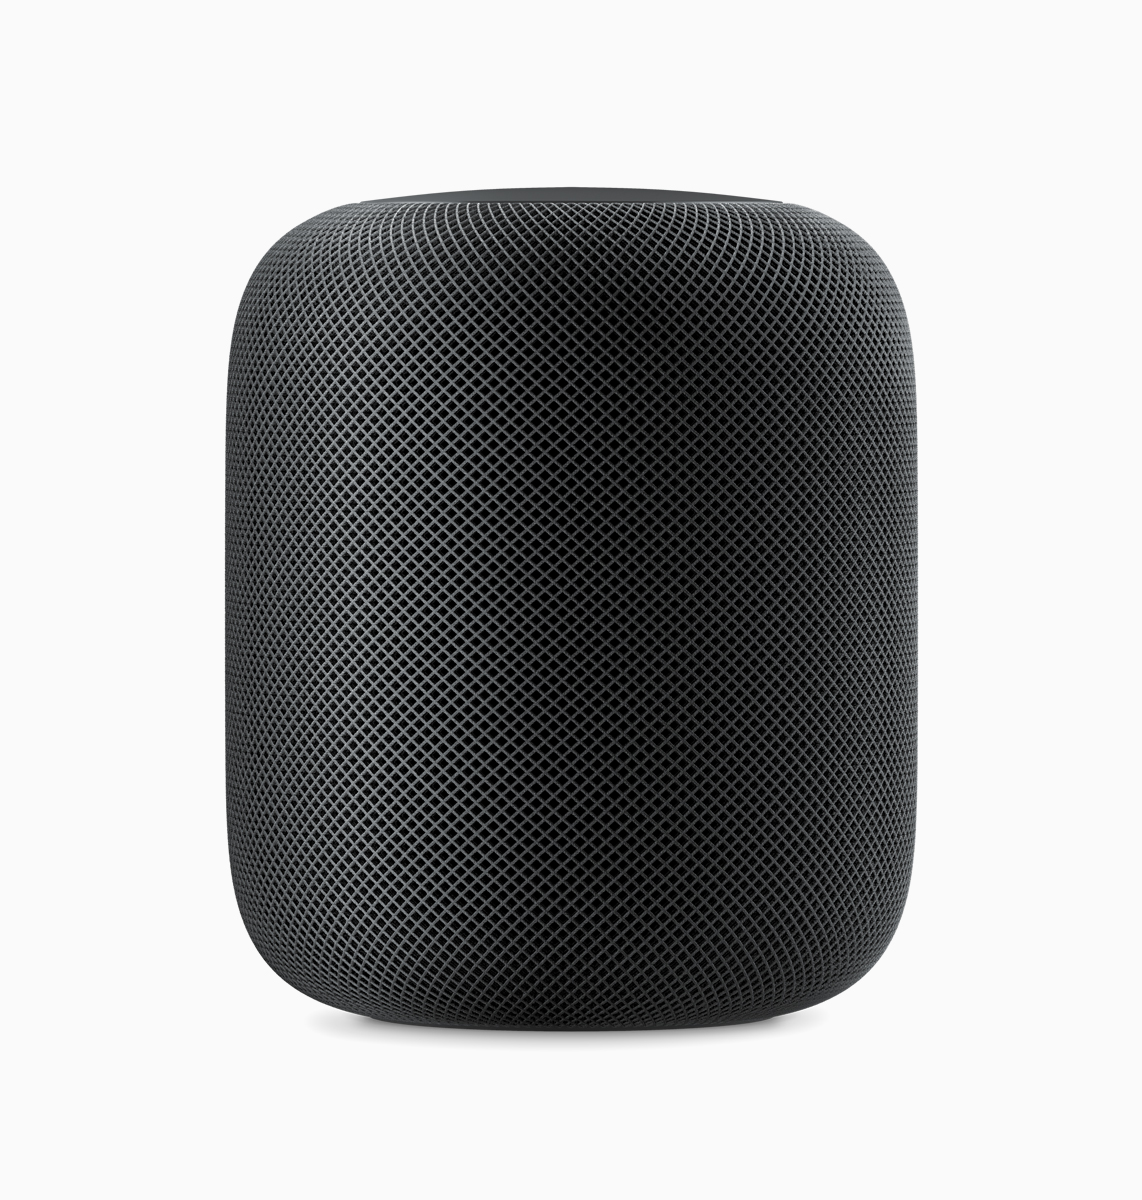 Apple Homepod smart speaker press picture courtesy of Apple Inc.